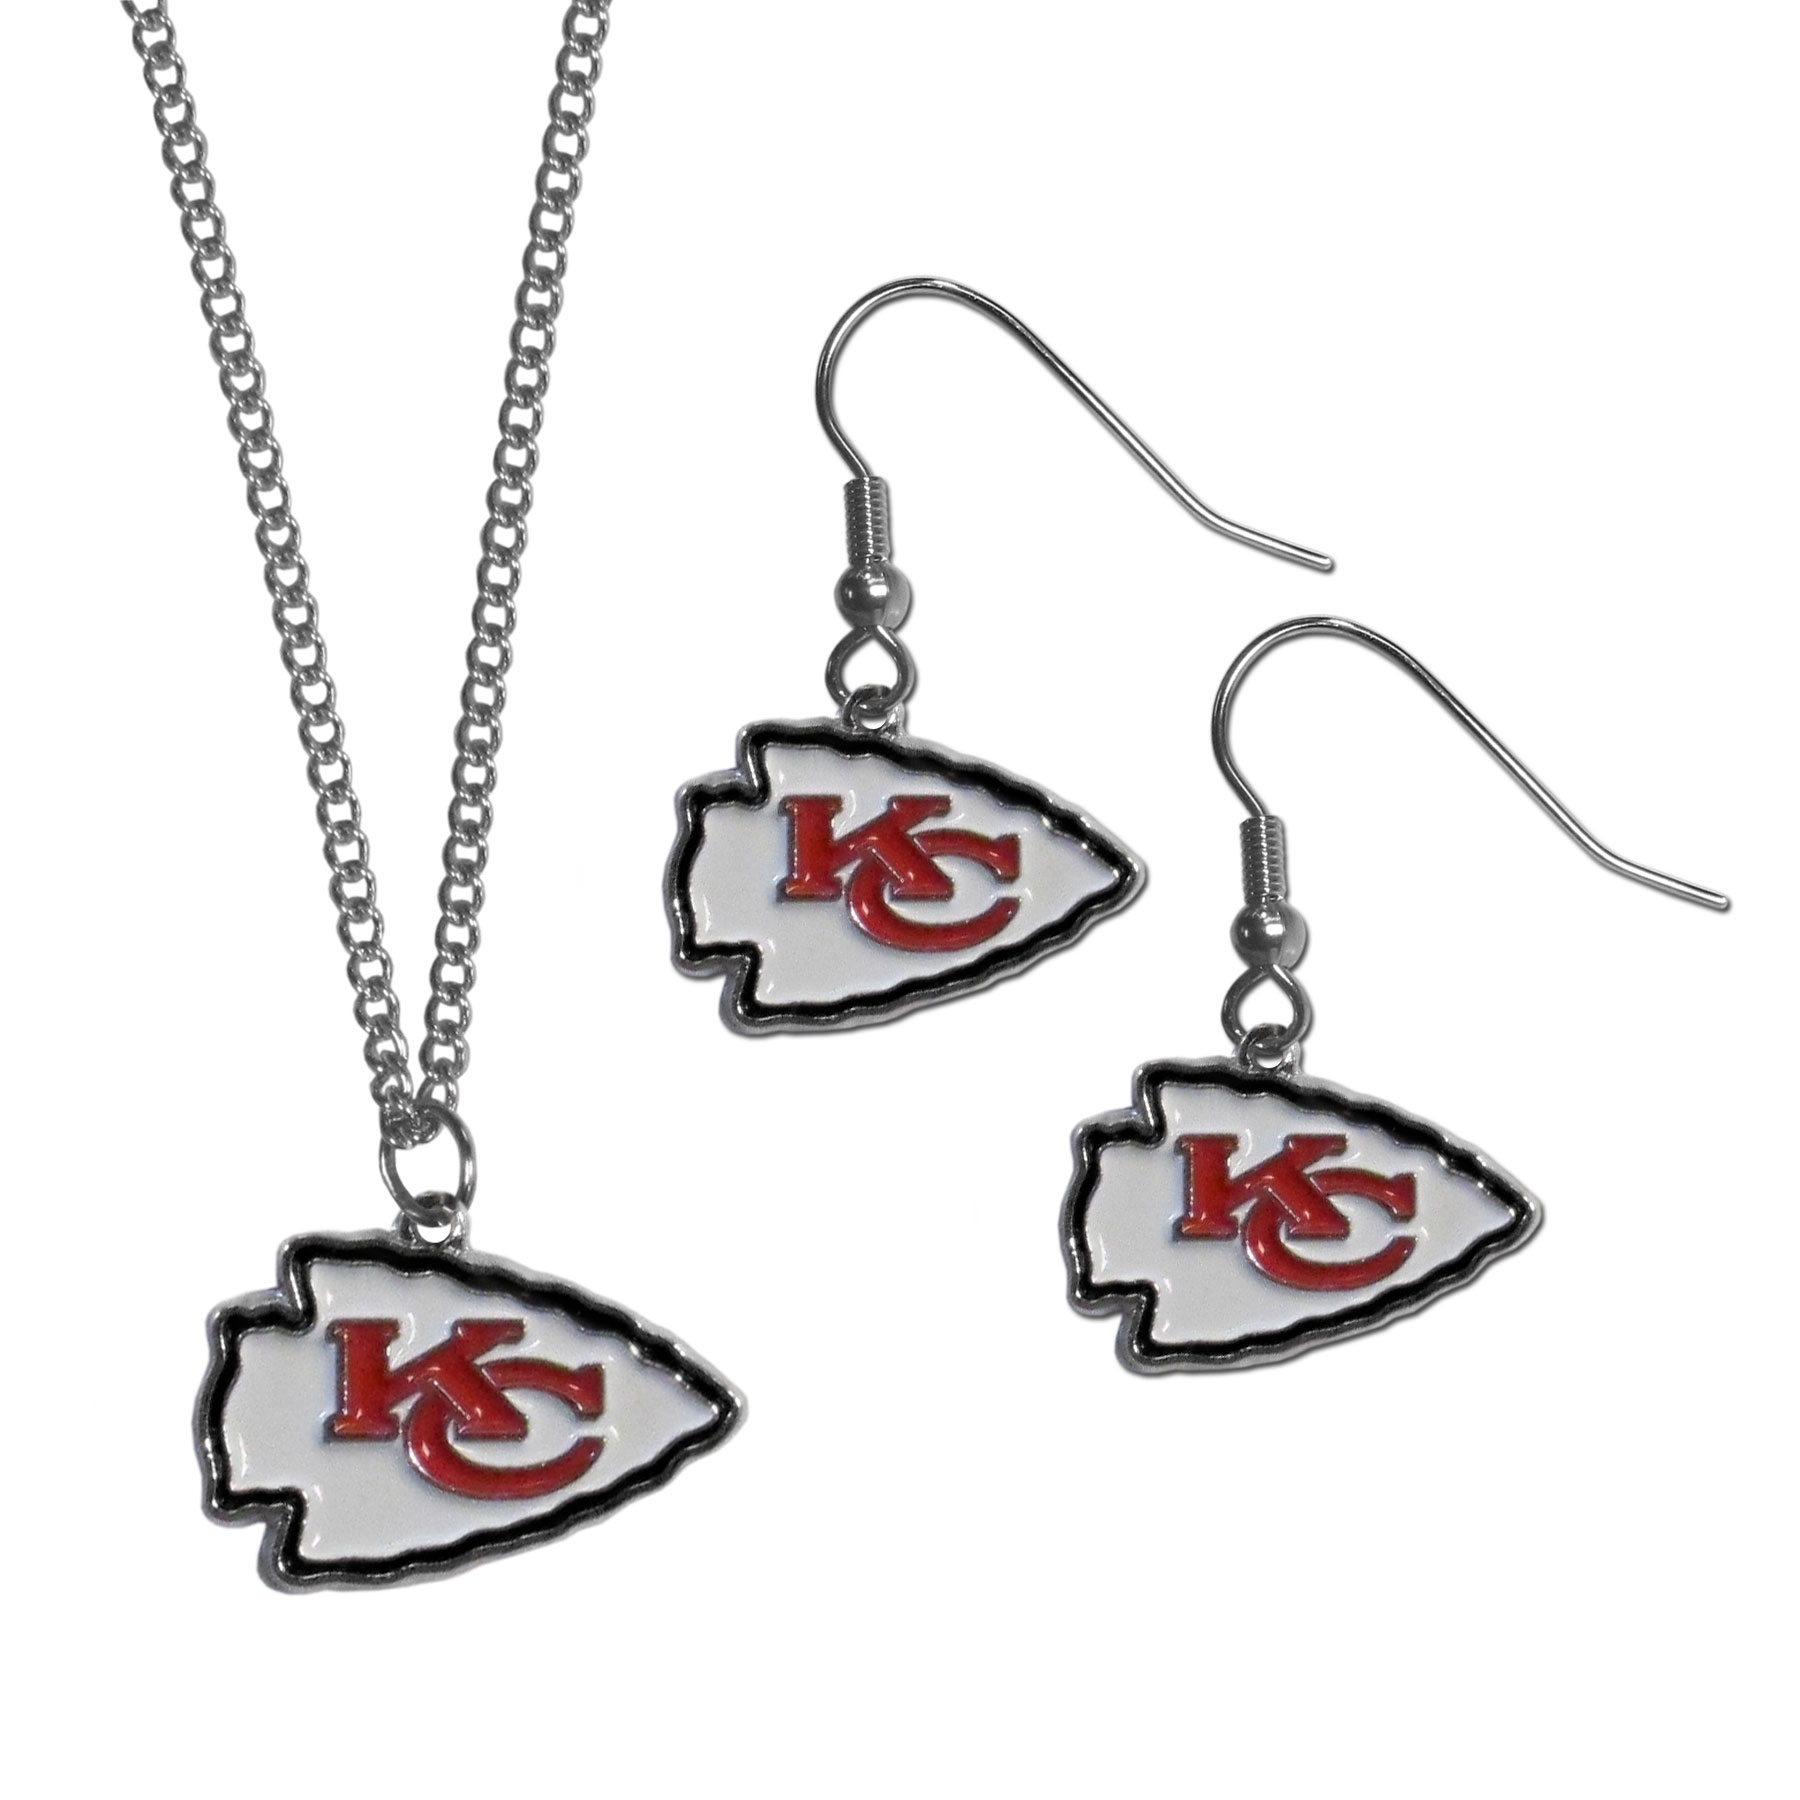 Kansas City Chiefs Dangle Earrings and Chain Necklace Set - This classic jewelry set contains are most popular Kansas City Chiefs dangle earrings and 22 inch chain necklace. The trendy, dangle earrings are lightweight and feature a fully cast metal team charm with enameled team colors. The matching necklace completes this fashion forward combo and is a spirited set that is perfect for game day but nice enough for everyday.